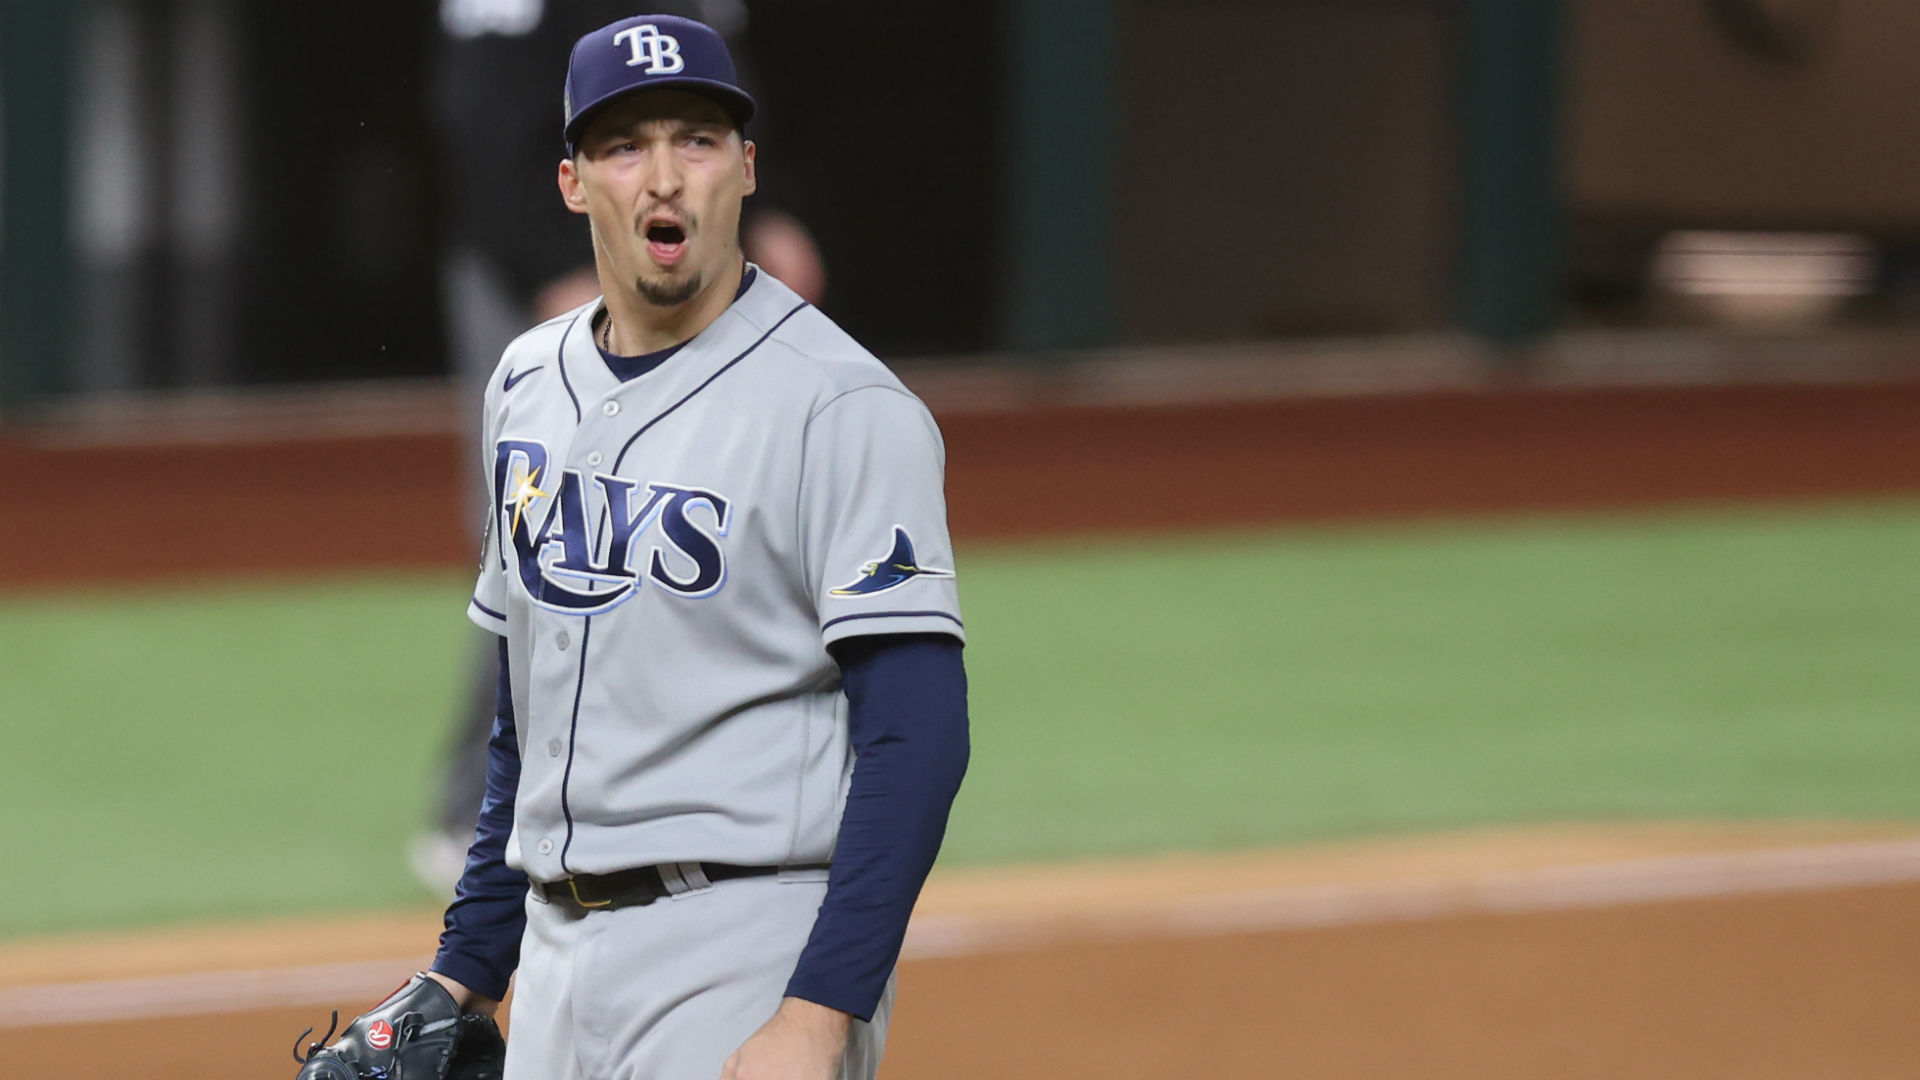 Blake Snell trade grades: Padres pull an ace; Rays continue to churn